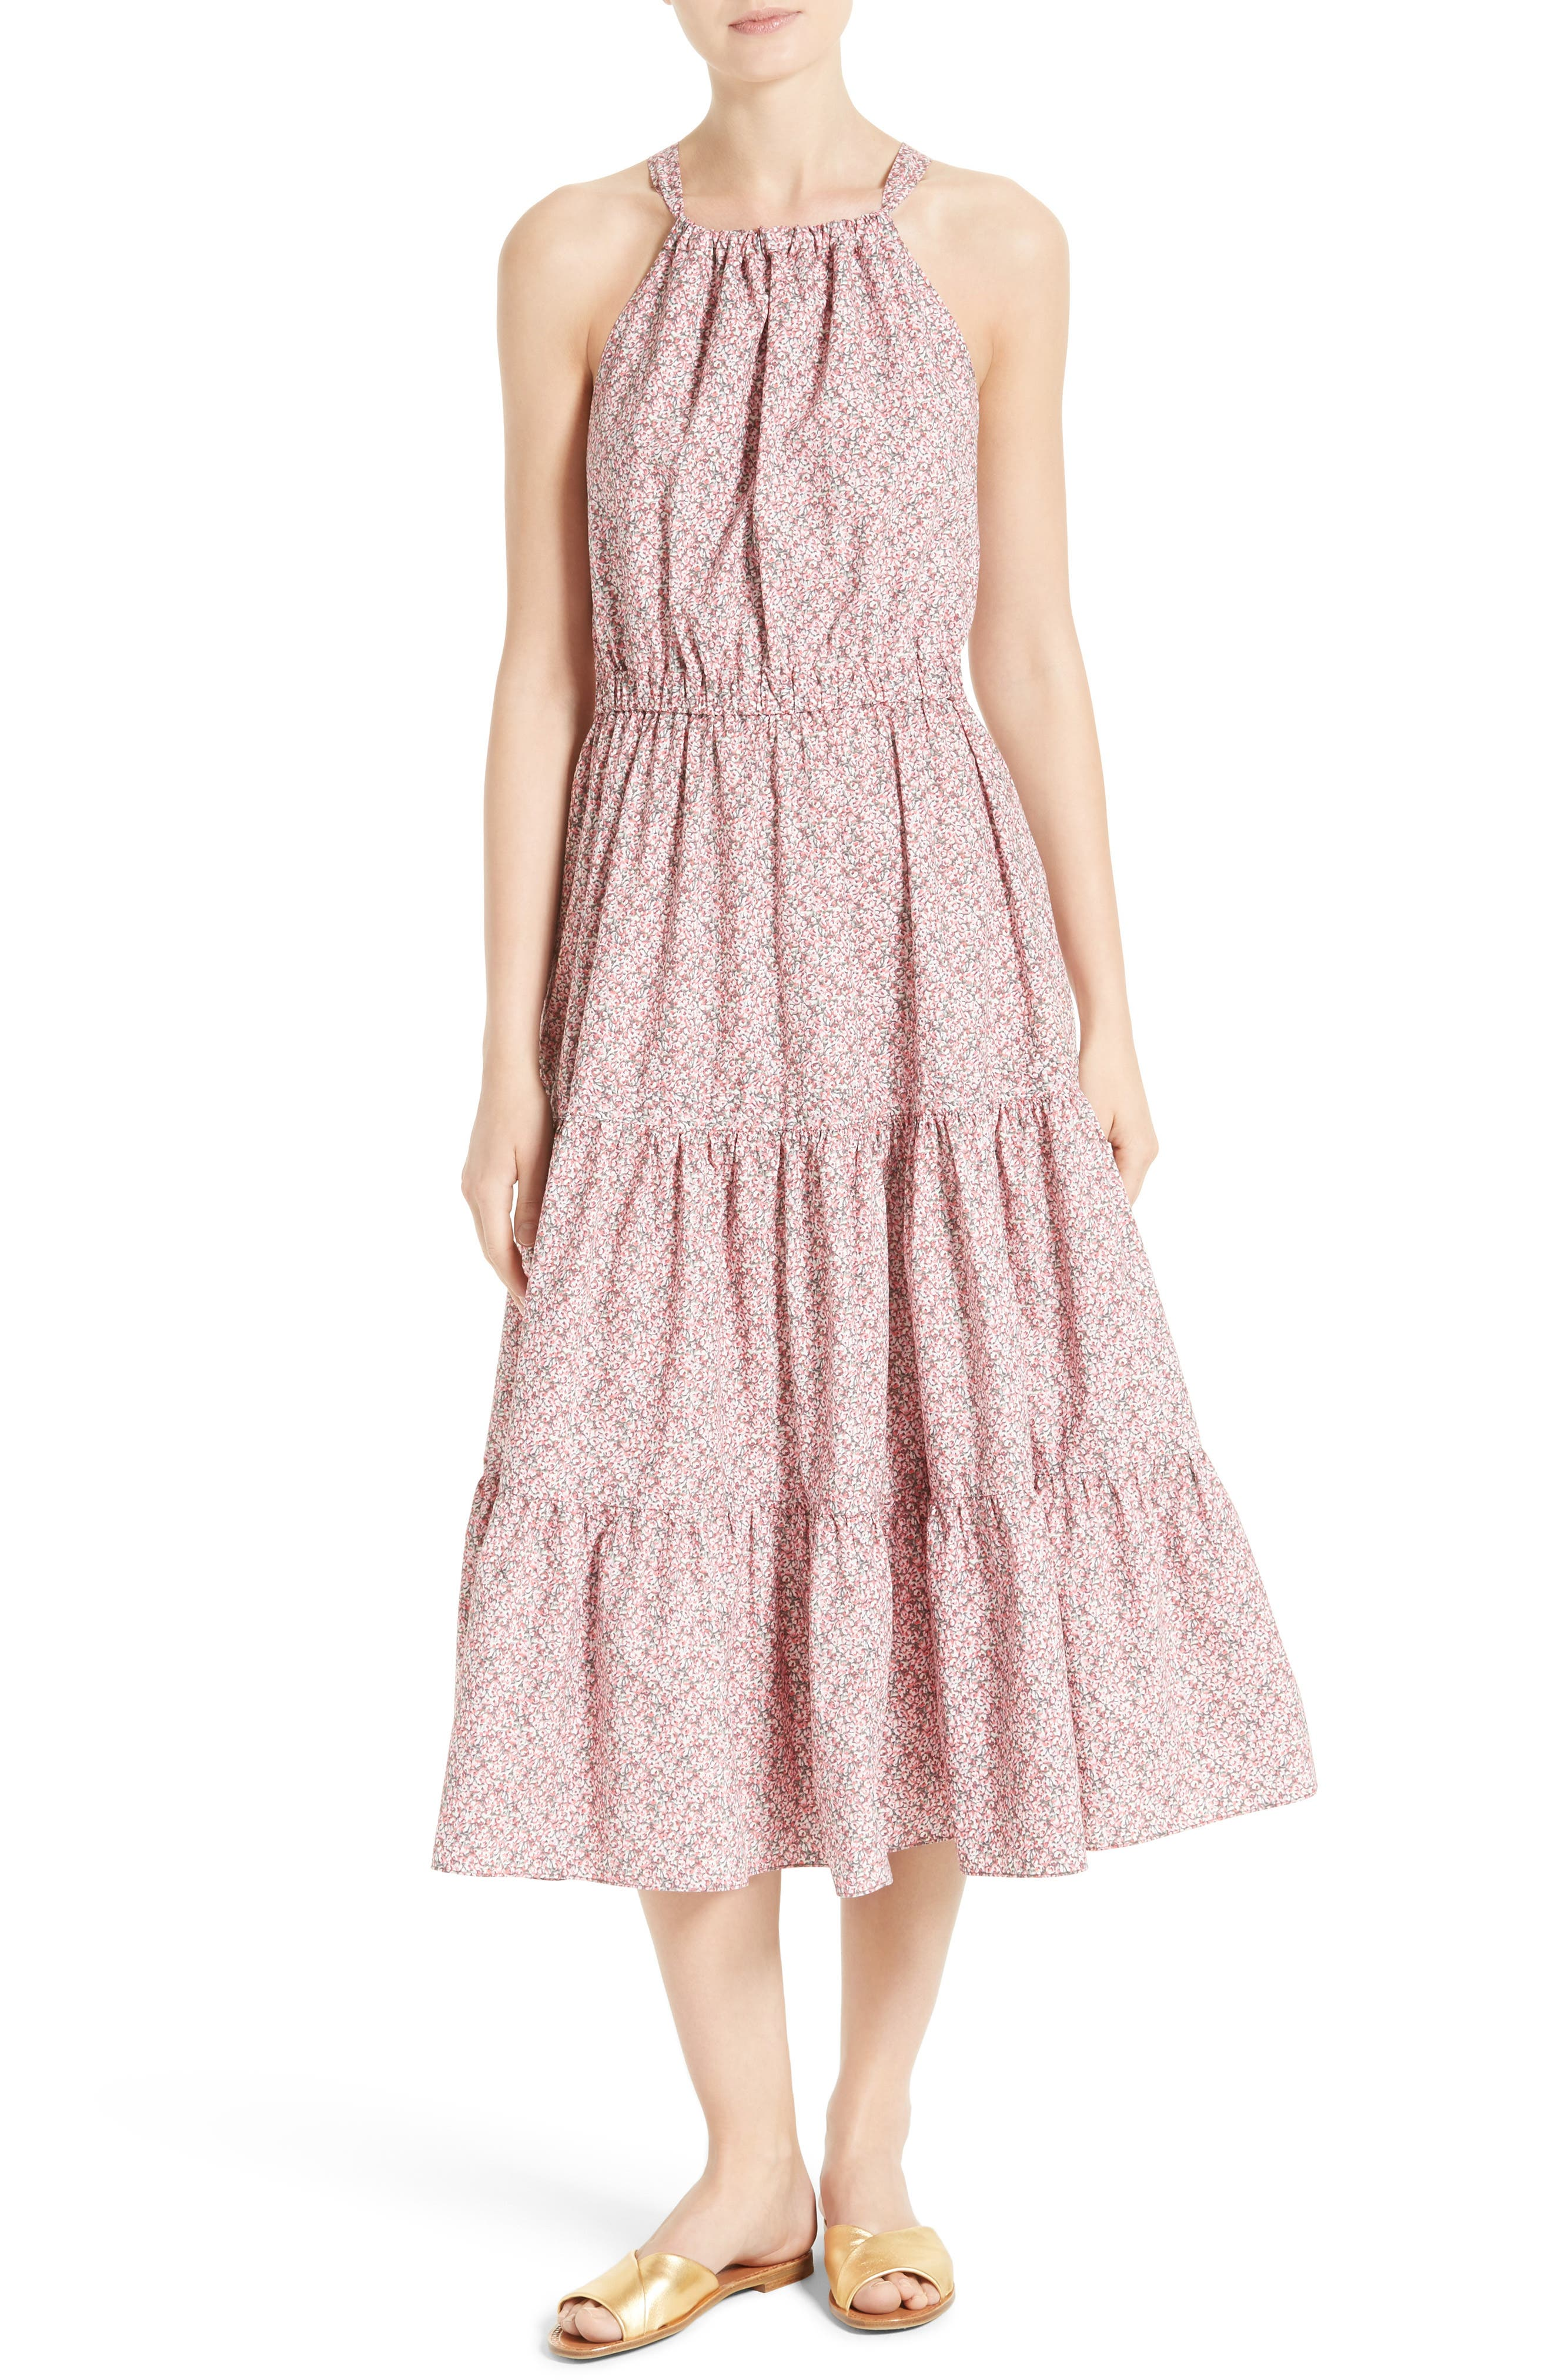 Main Image - La Vie Rebecca Taylor Meadow Floral Tie Back Tiered Sundress